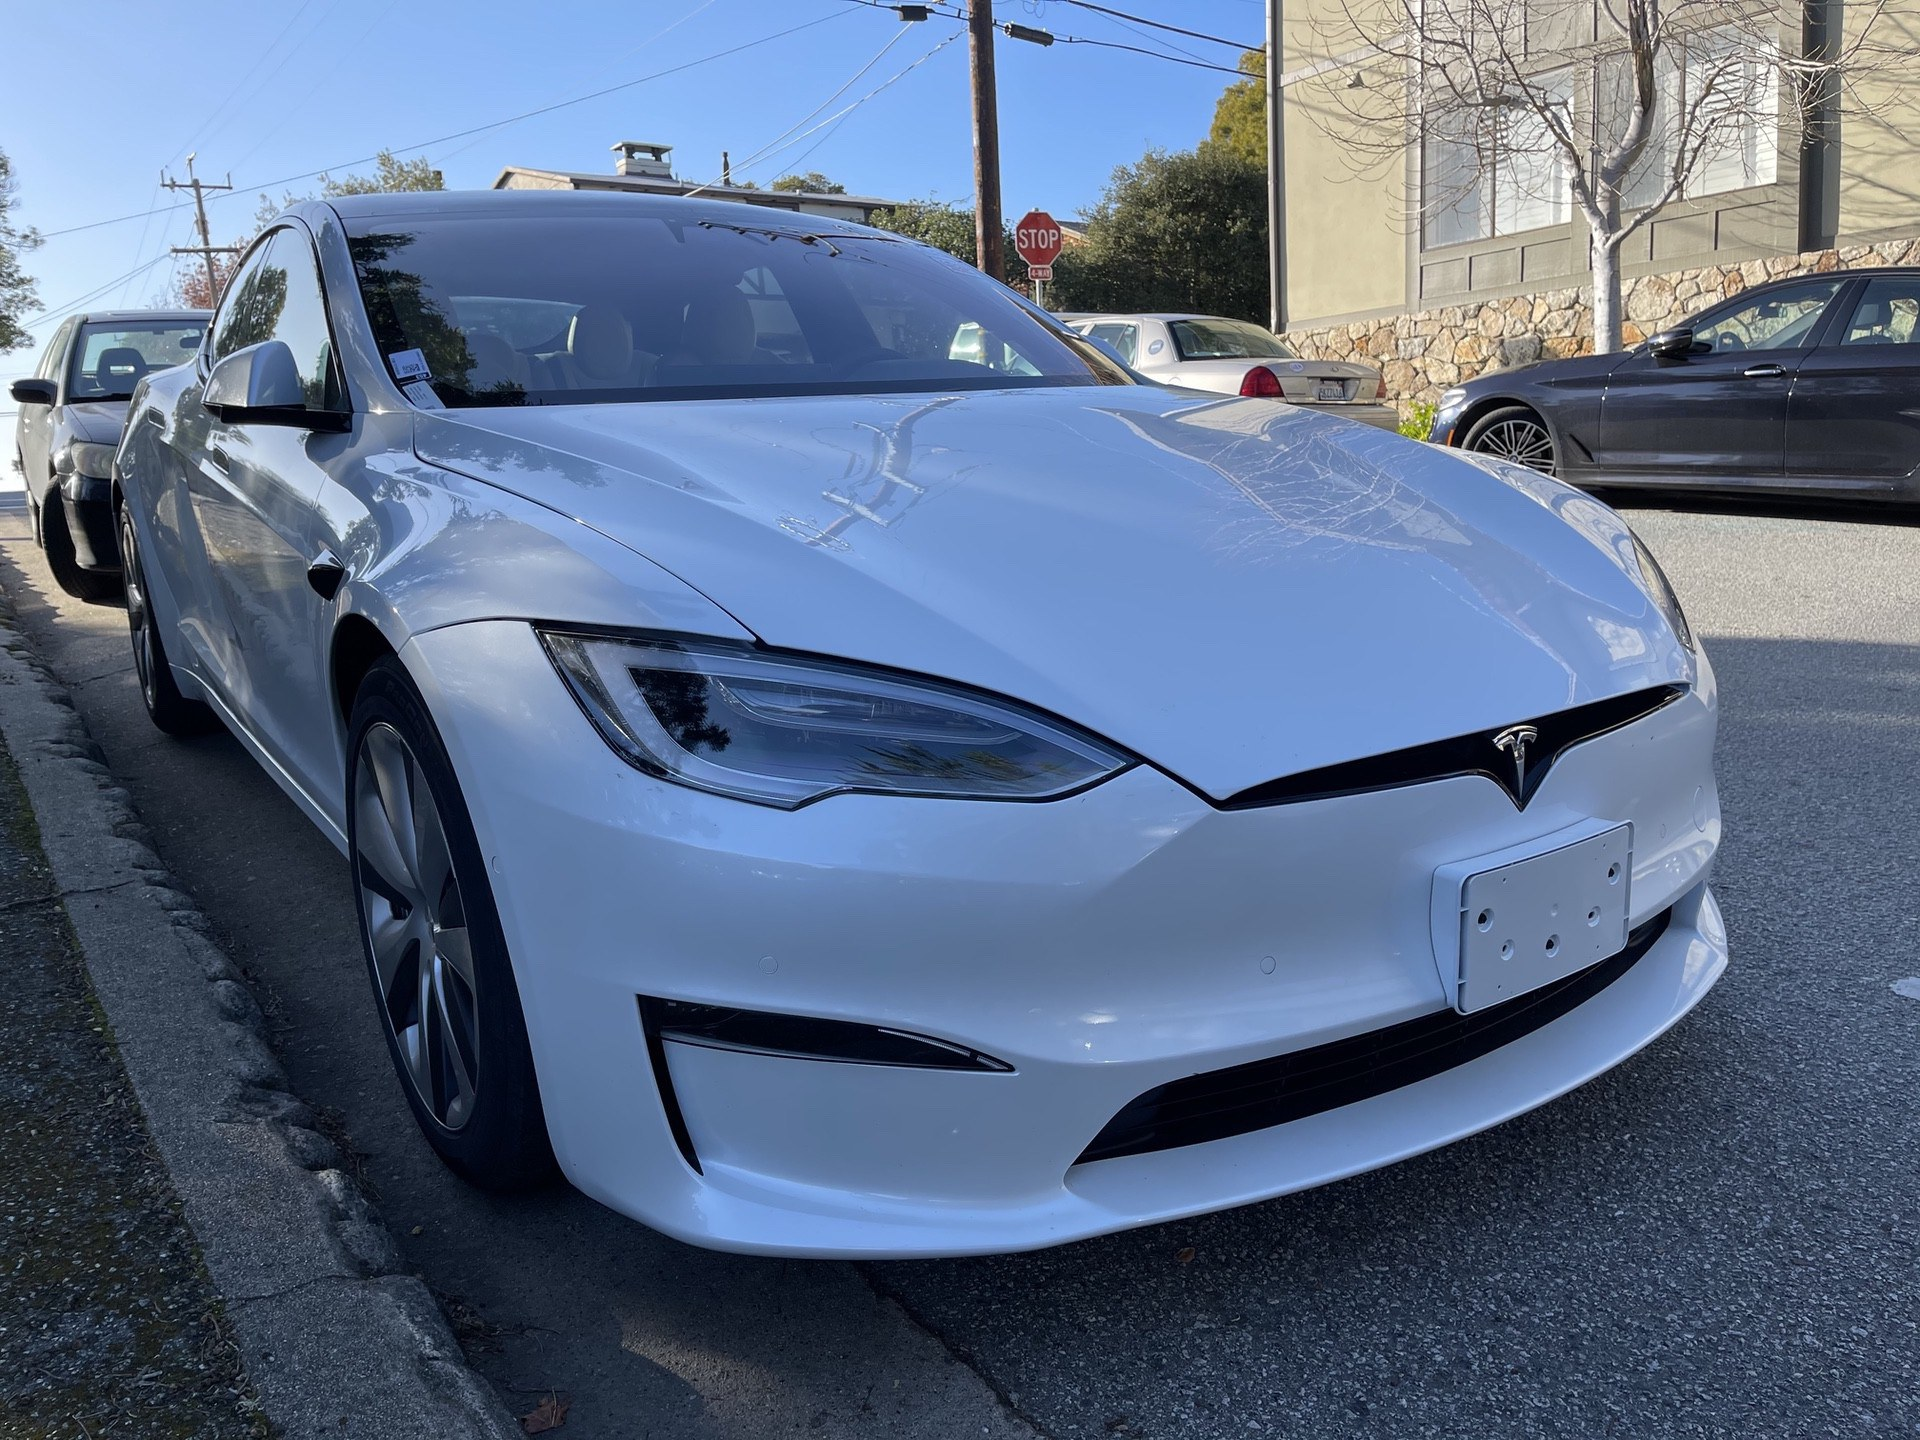 Tesla_Model_S_Plaid_test_mule-0001